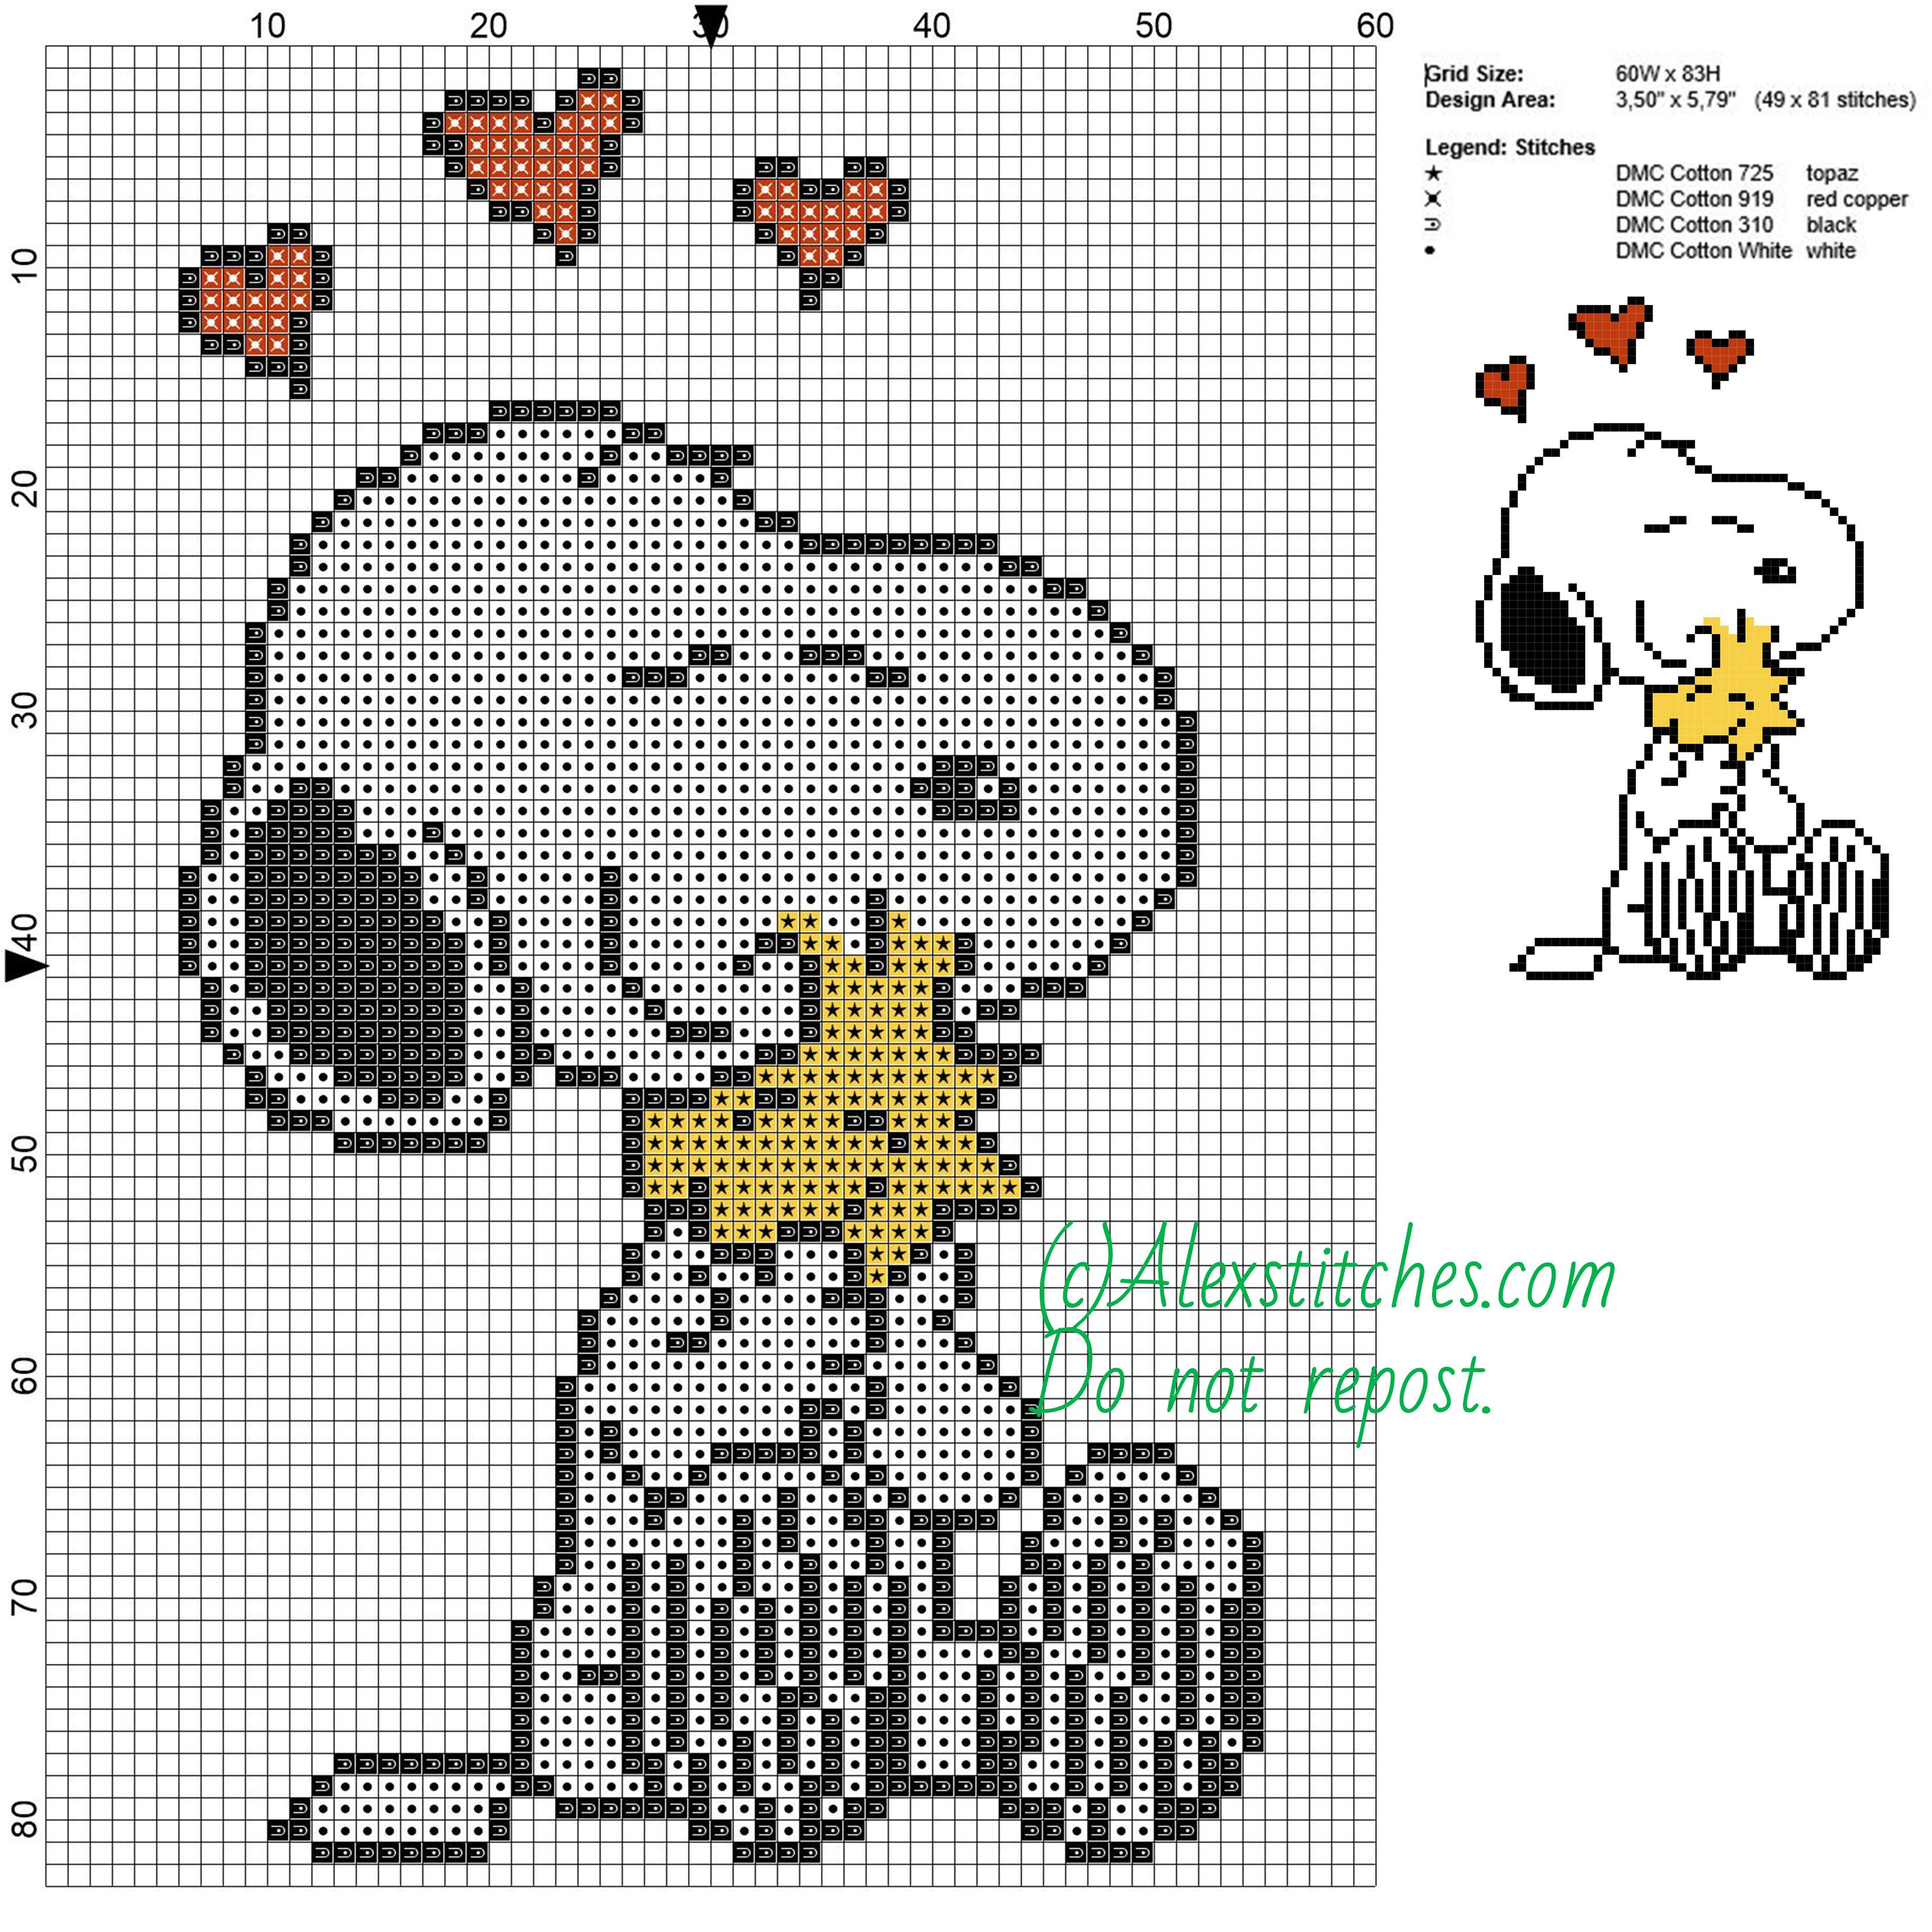 Snoopy and Woodstock free cartoons cross stitch pattern 60x83 4 ...